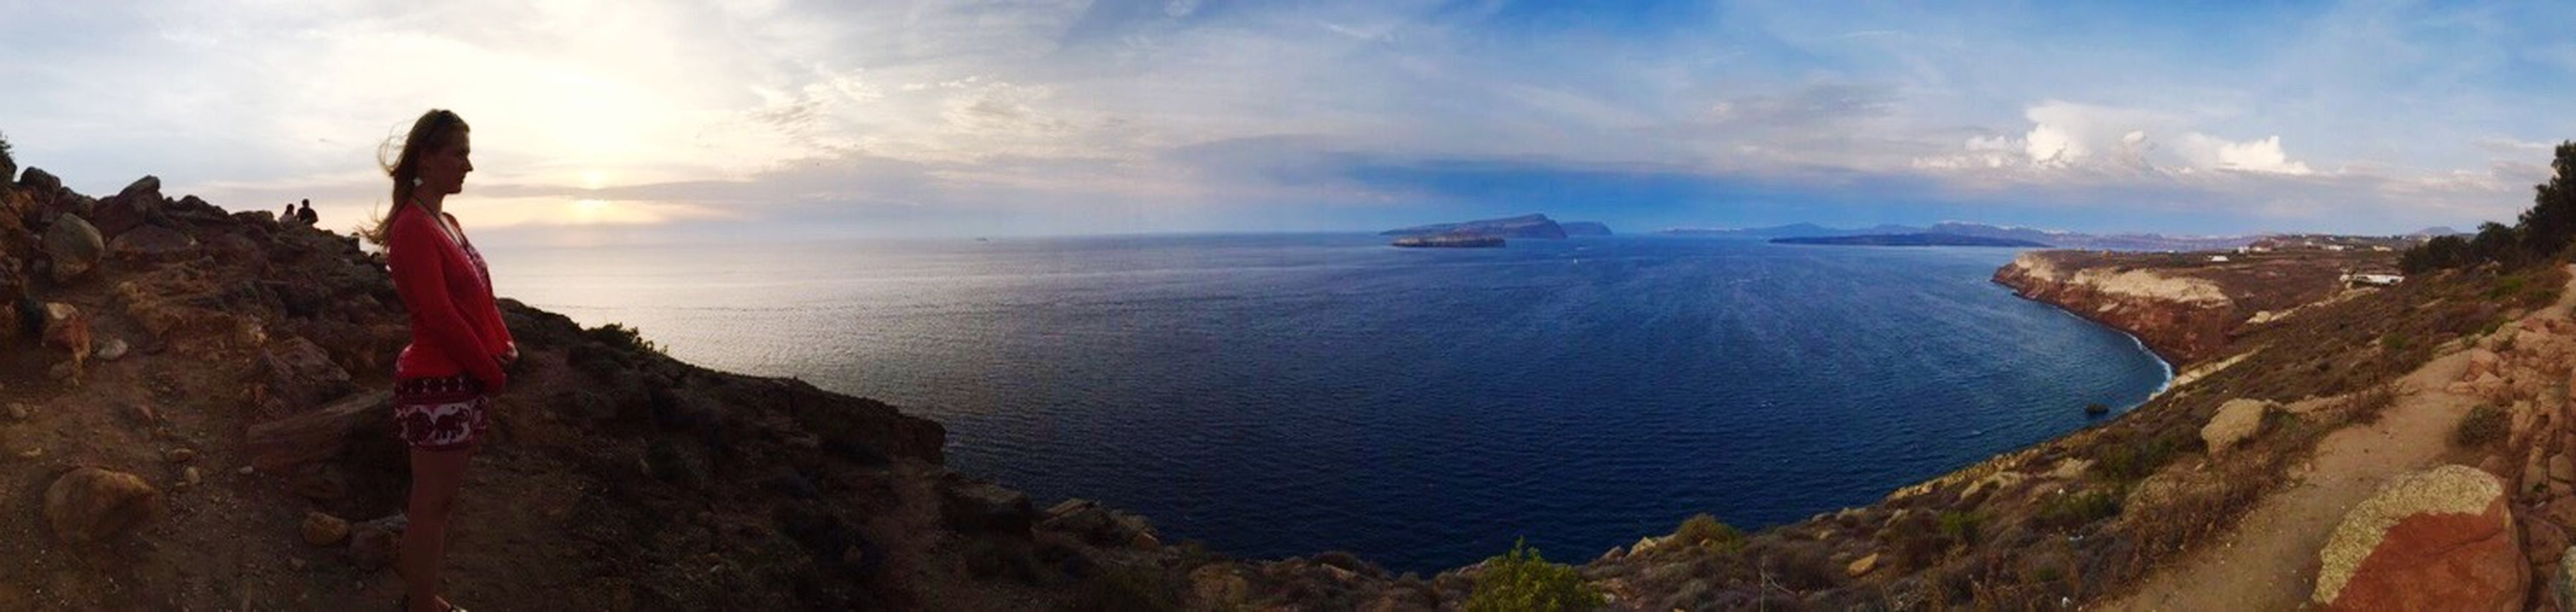 Panoramas Of Santorini From Santorini With Love Santorini Island